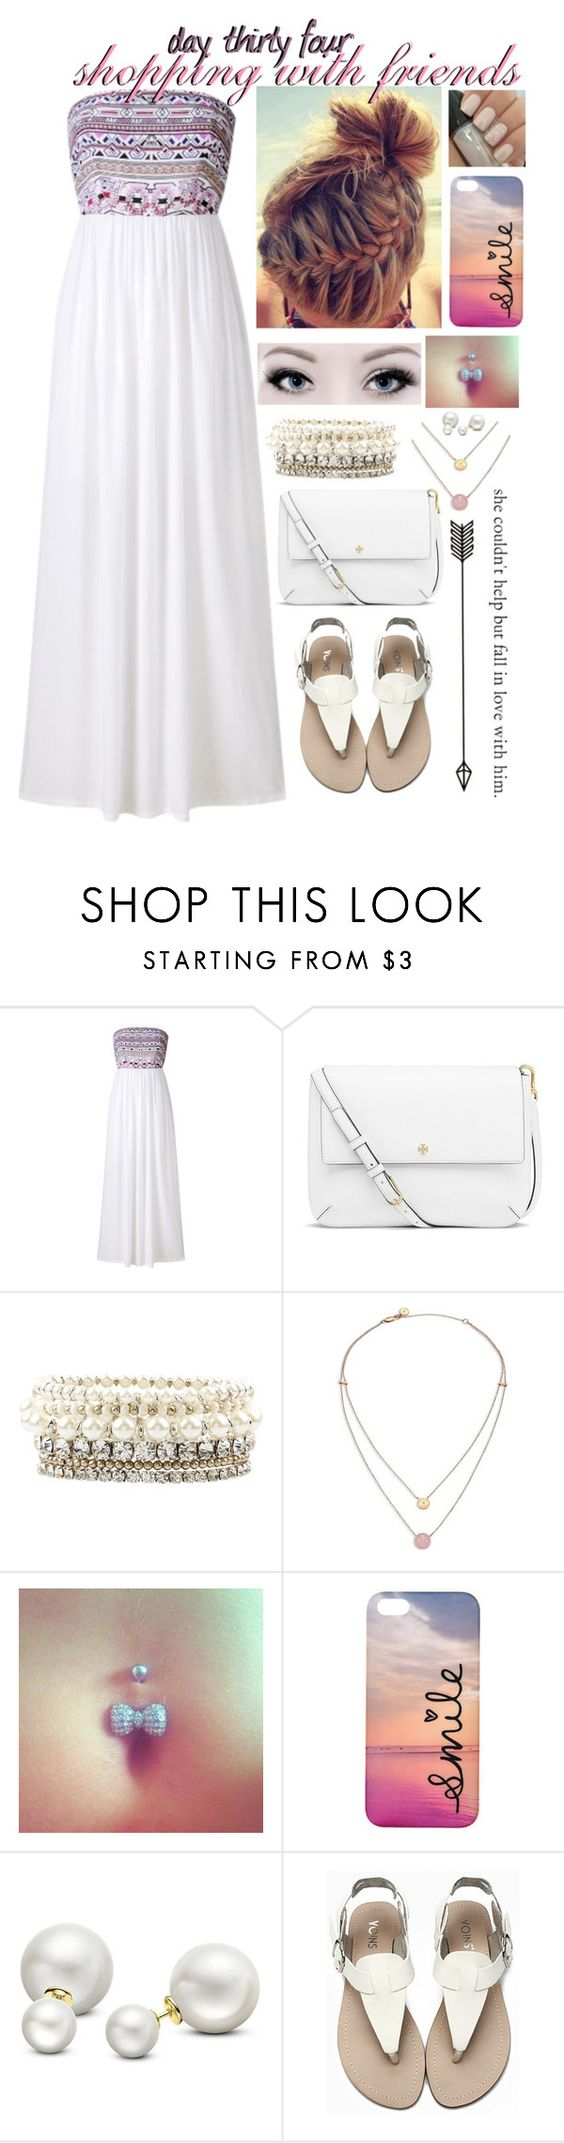 """""""day thirty four, shopping with friends"""" by roxouu ❤ liked on Polyvore featuring Tory Burch, Accessorize, Michael Kors, claire's, Allurez and byroxouu"""